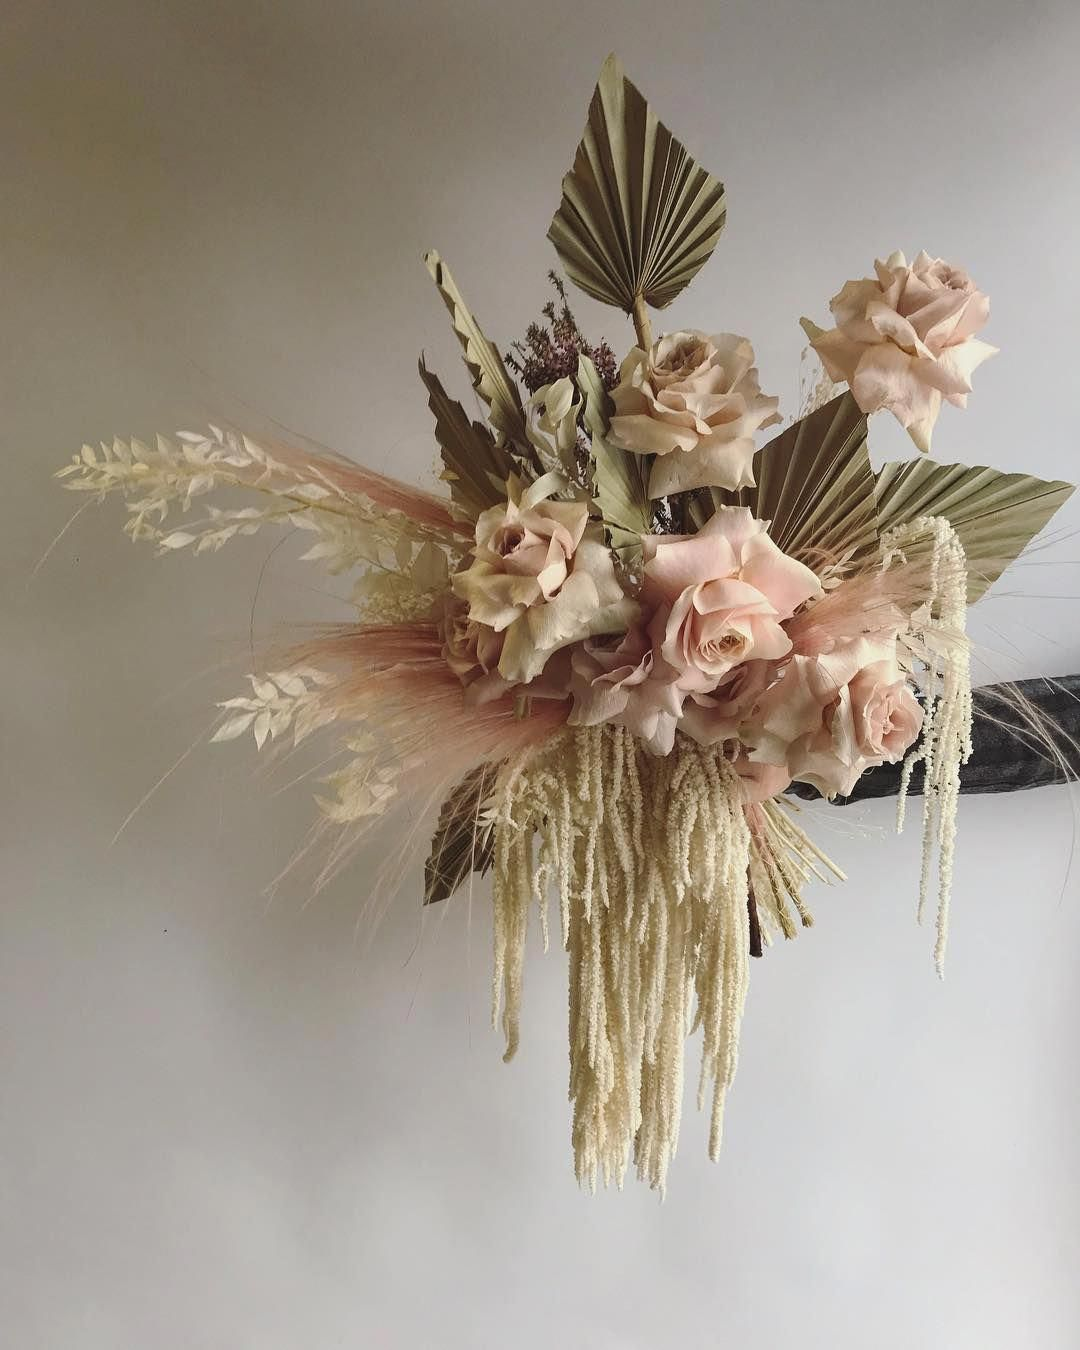 Prudent Defined Romantic Wedding Centerpieces Check My Blog Romanticweddingcenterpieces In 2020 Dried Flower Arrangements Flower Arrangements Dried Flowers